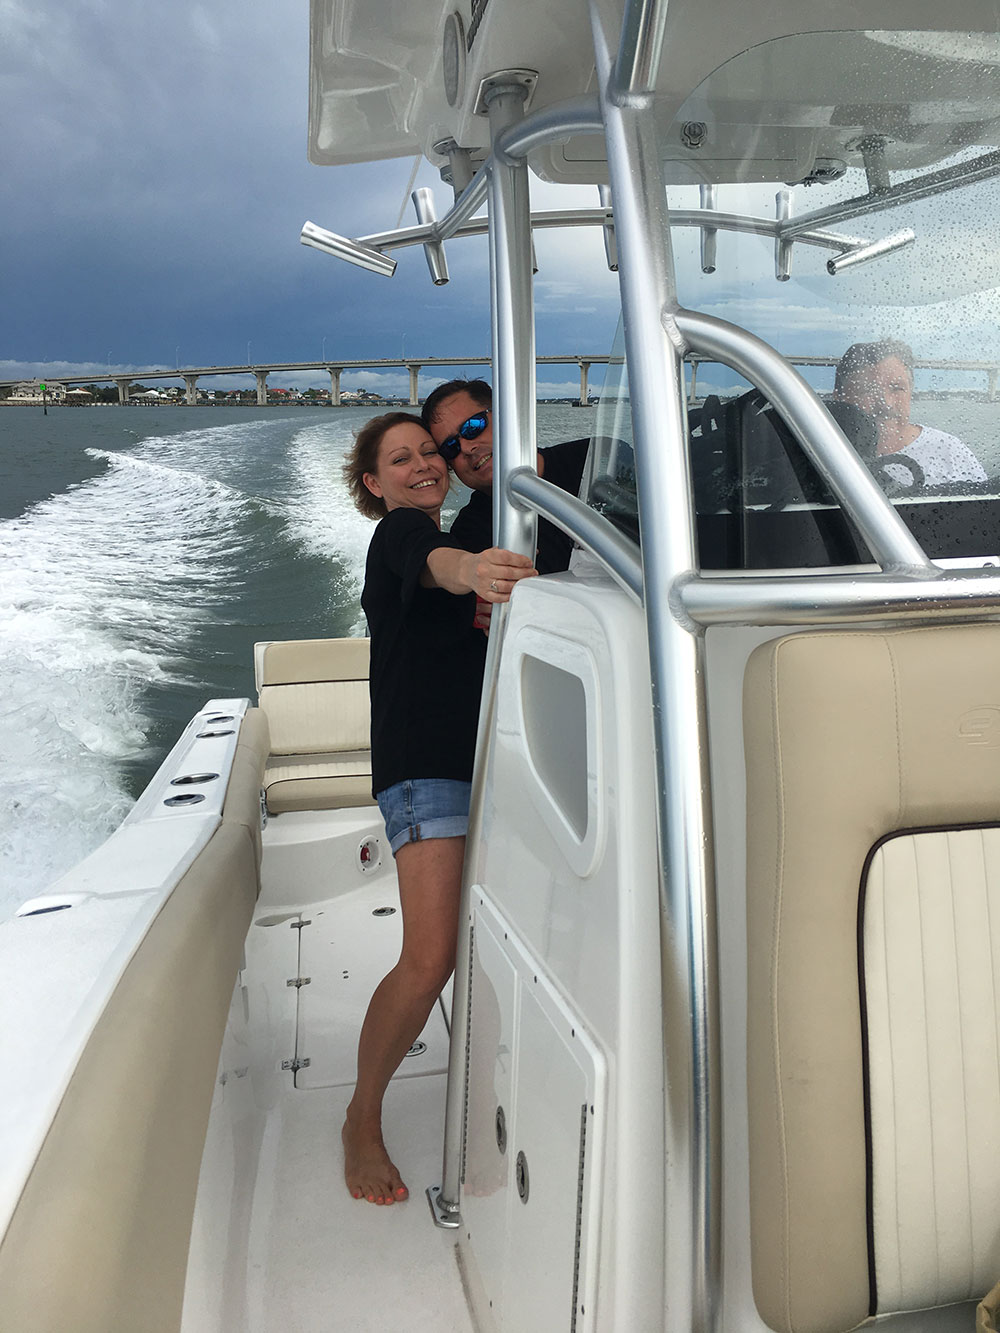 chris worth and his wife smiling on the boat in the intracoastal water